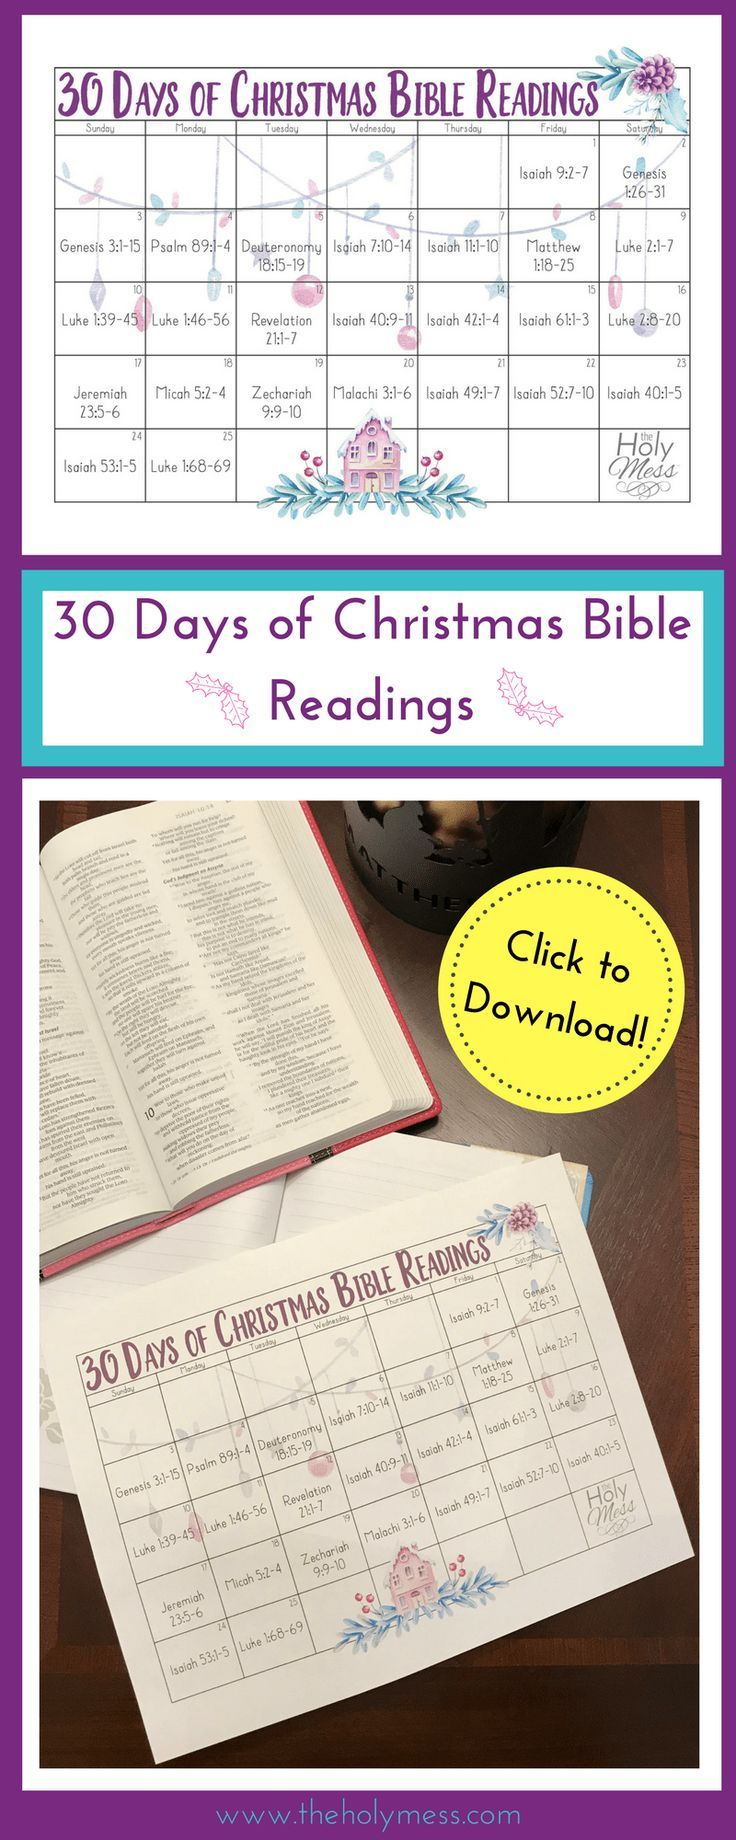 30 Days of Christmas Bible Readings | Bible readings, Bible and ...